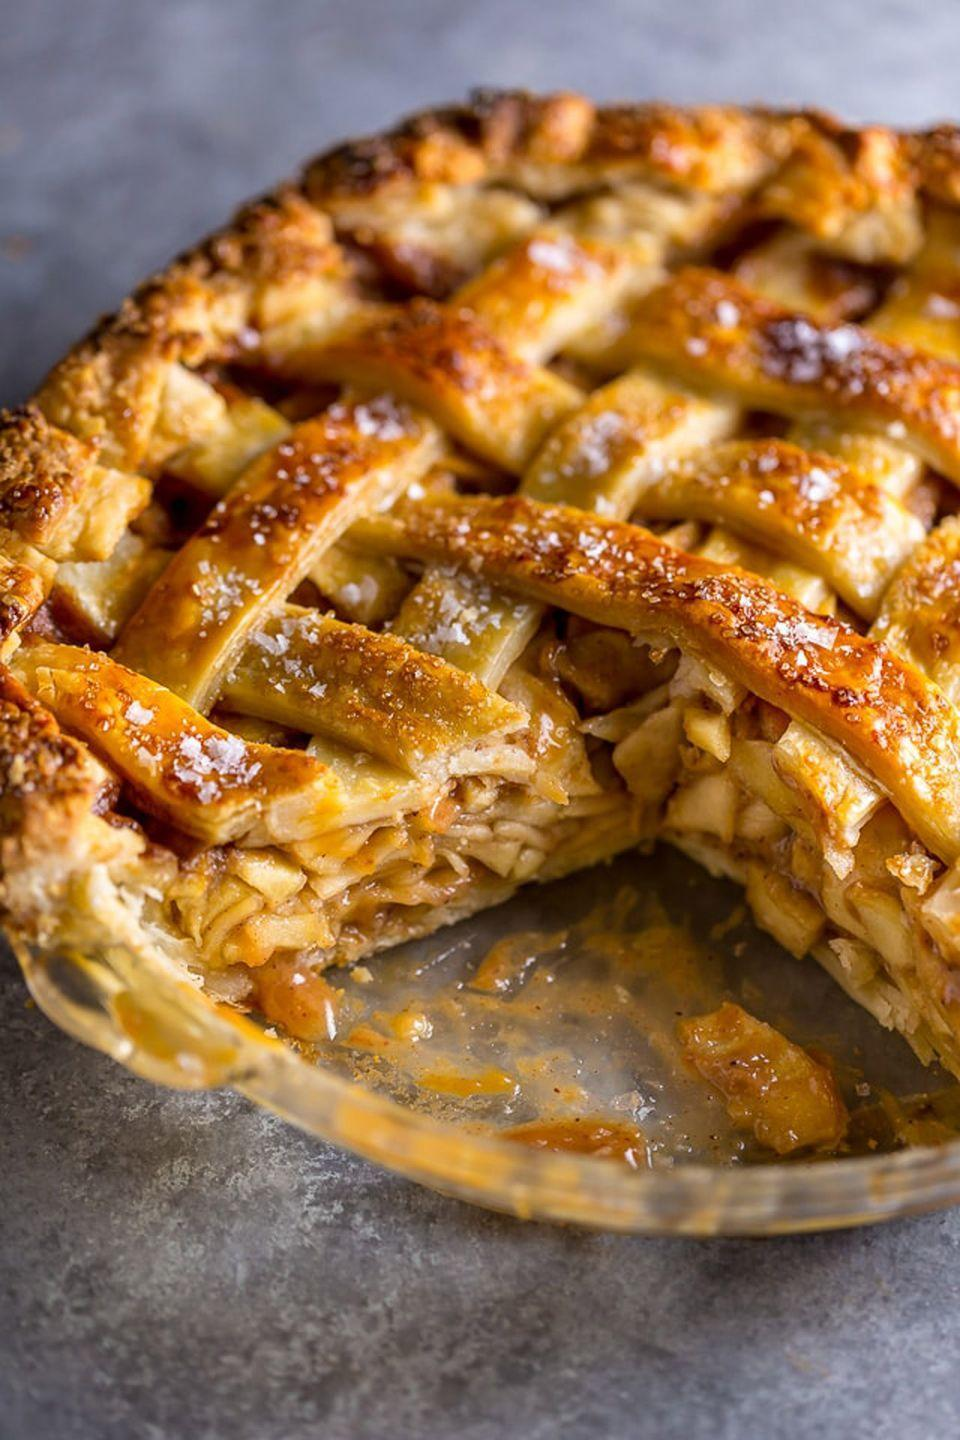 """<p>Be sure to save some of the homemade salted caramel sauce to drizzle on each slice.</p><p><strong>Get the recipe at <a href=""""https://bakerbynature.com/salted-caramel-apple-pie/"""" rel=""""nofollow noopener"""" target=""""_blank"""" data-ylk=""""slk:Baker by Nature"""" class=""""link rapid-noclick-resp"""">Baker by Nature</a>.</strong> </p>"""